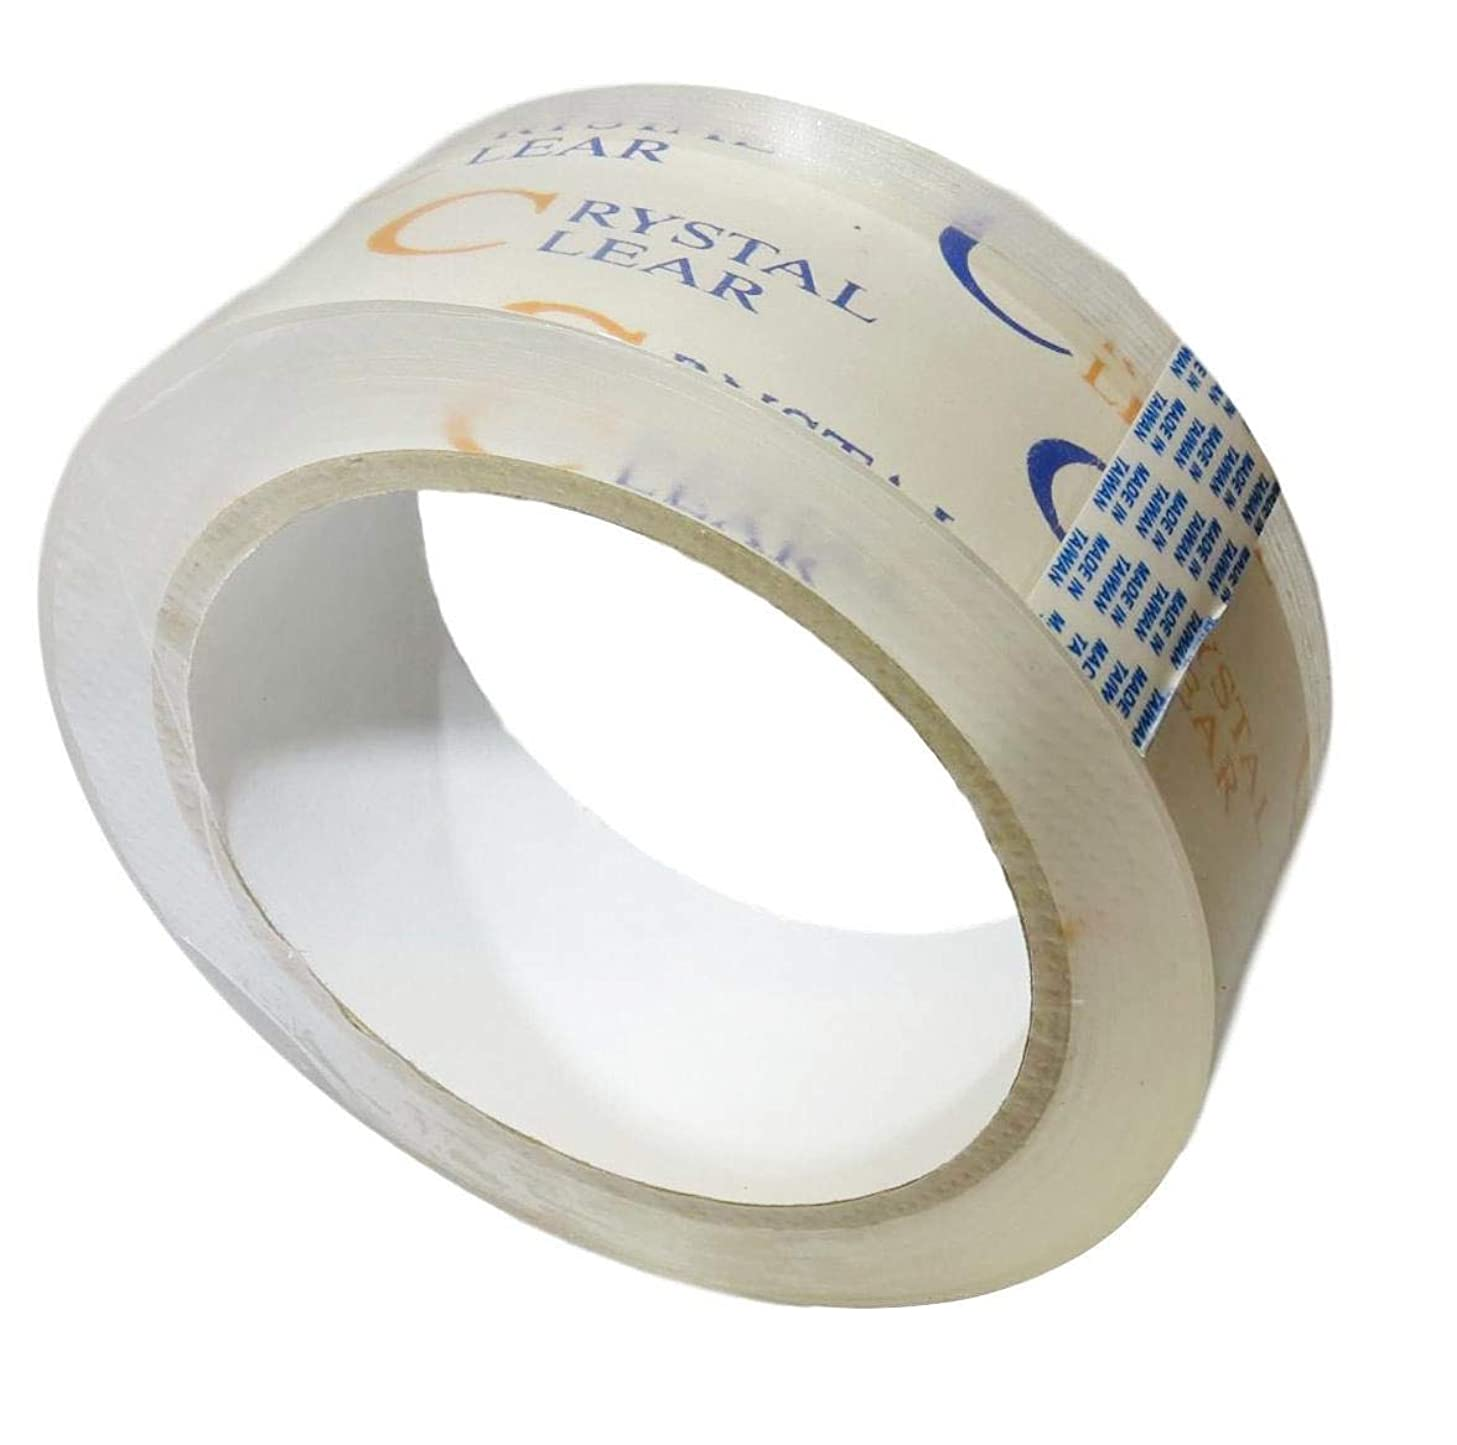 T.R.U. LP-20CC Book Repair Crystal Clear Label Protection Tape: 1.5 in. x 72 yds. (Pack of 1)